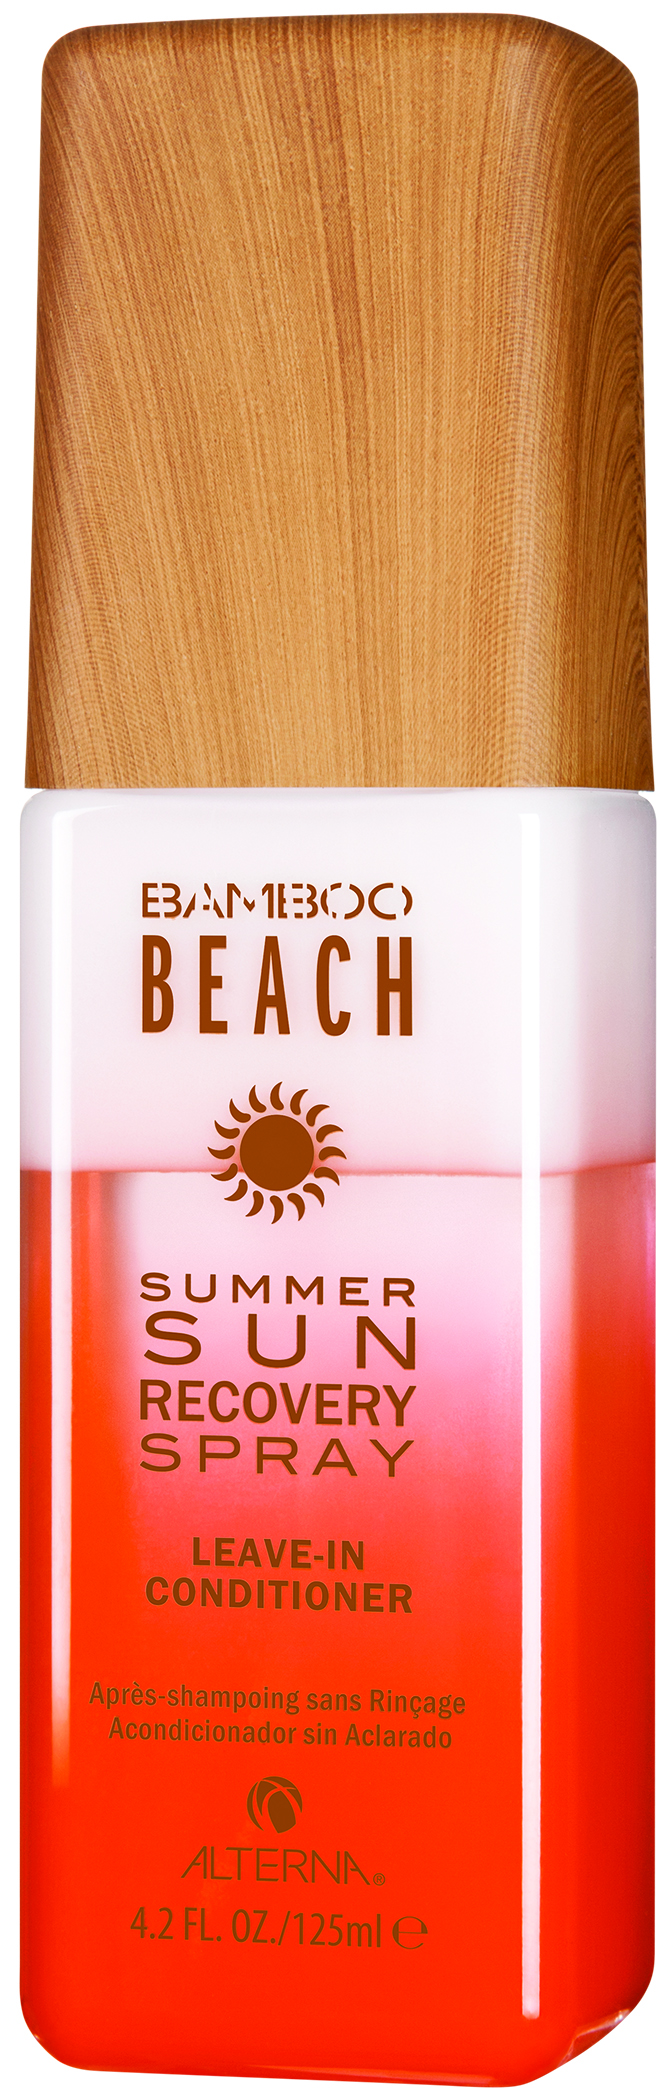 ALTERNA Спрей восстанавливающий для волос / Bamboo Beach Summer Sun Recovery Spray 125мл